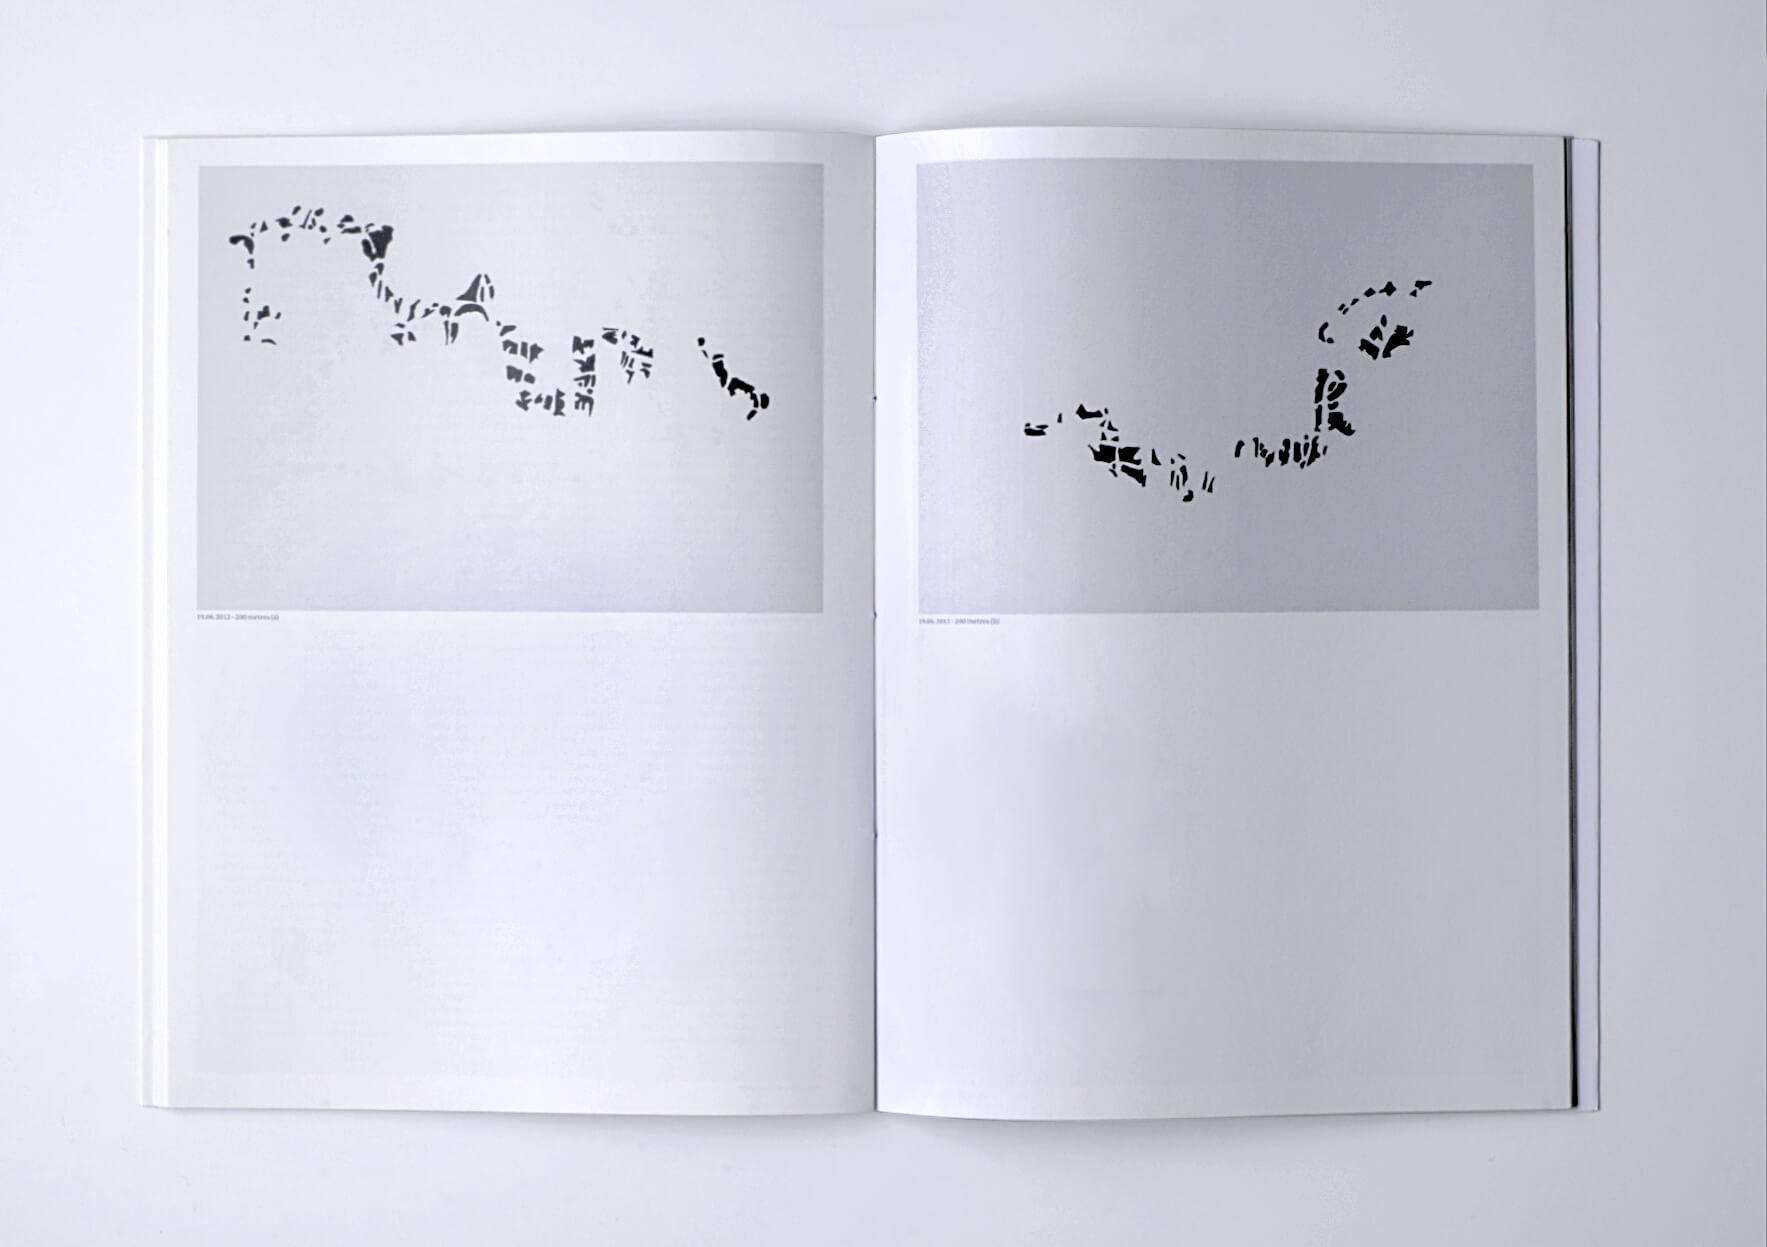 Irene Kopelman The Exact Opposite of Distance. Notes on Representation V.5, 2014 28 x 21 cm, 72 p. Ed. Roma Publications. Texts in English and Spanish. | Mother | ProjecteSD